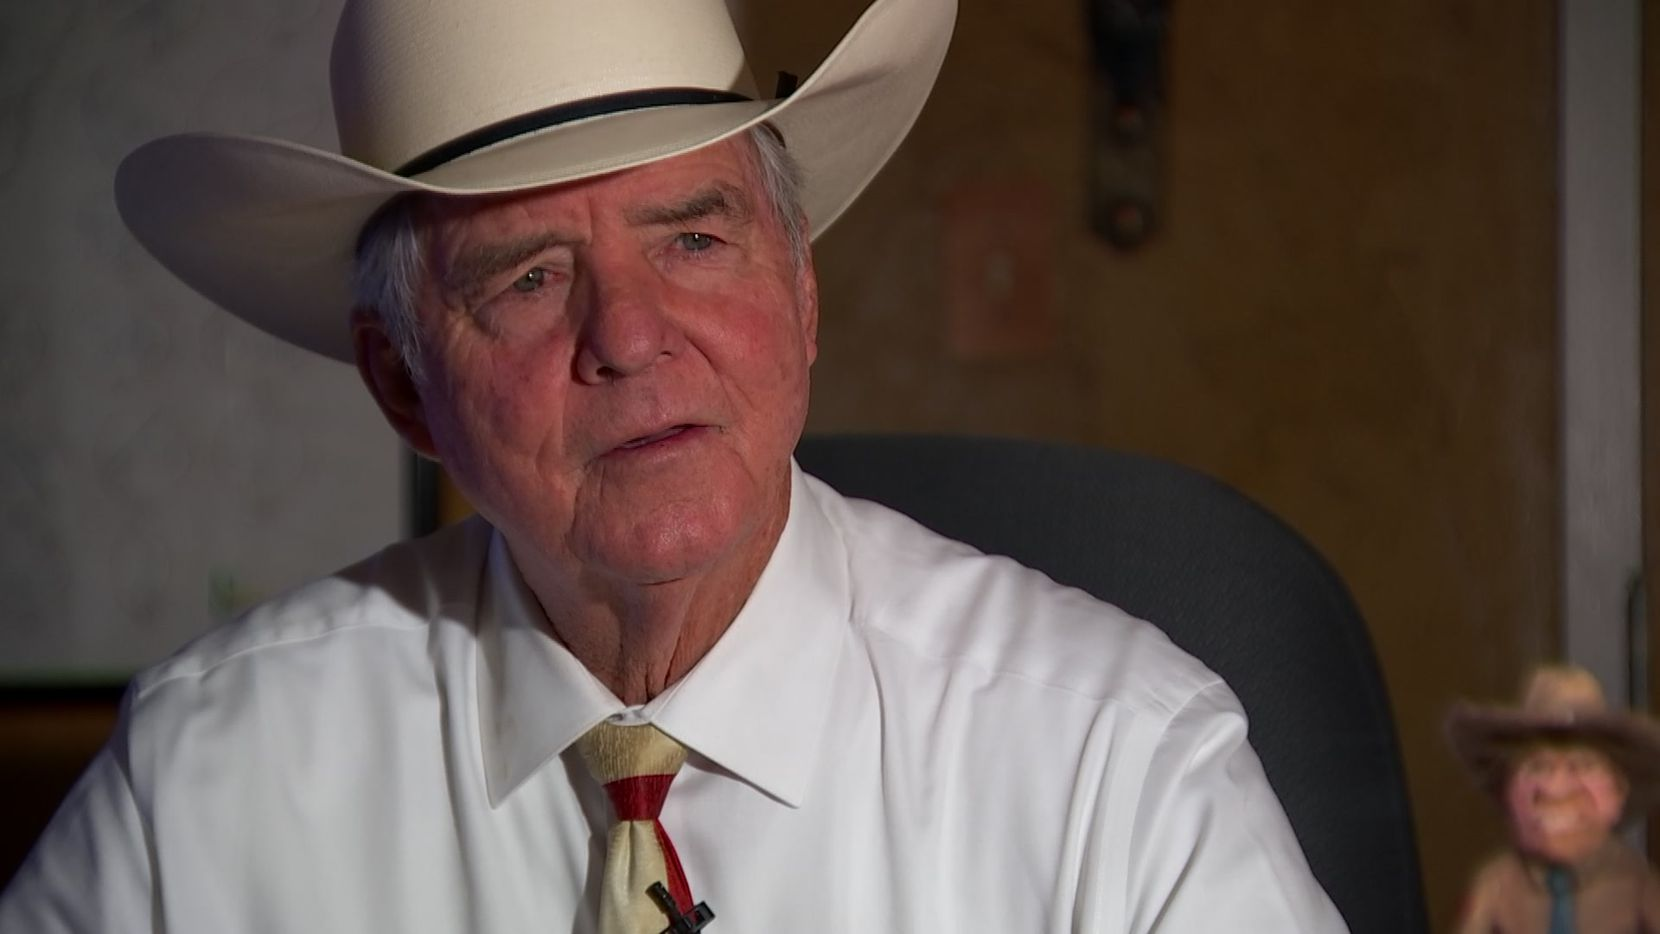 Billy Rowles was sheriff in Jasper County at the time of James Byrd's murder.